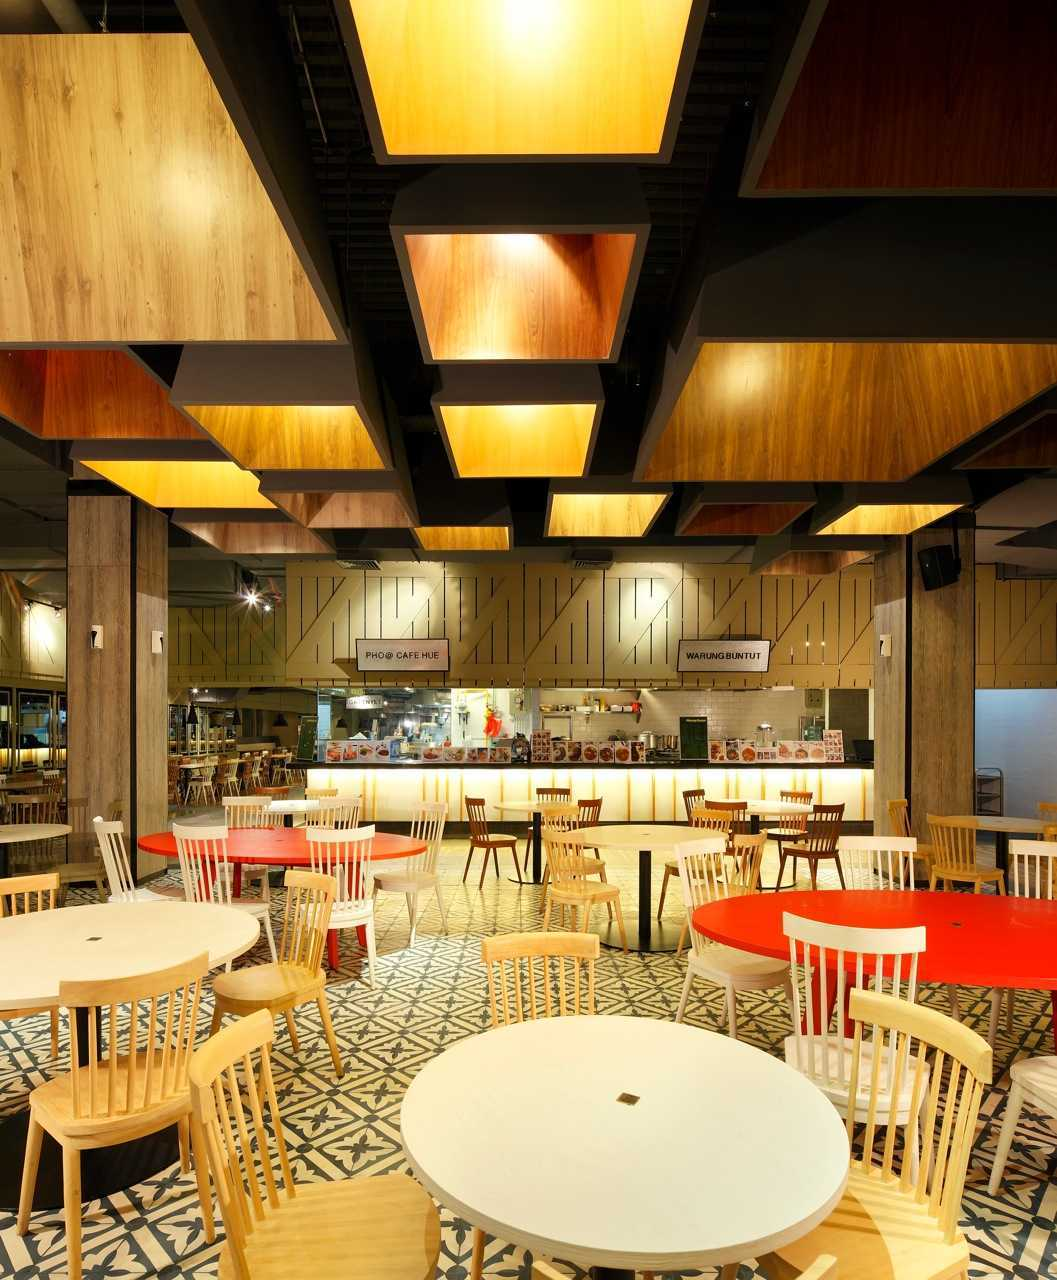 Ma-Ru Urban Kitchen  Plaza Indonesia Plaza Indonesia Seating Area Restaurant   15336